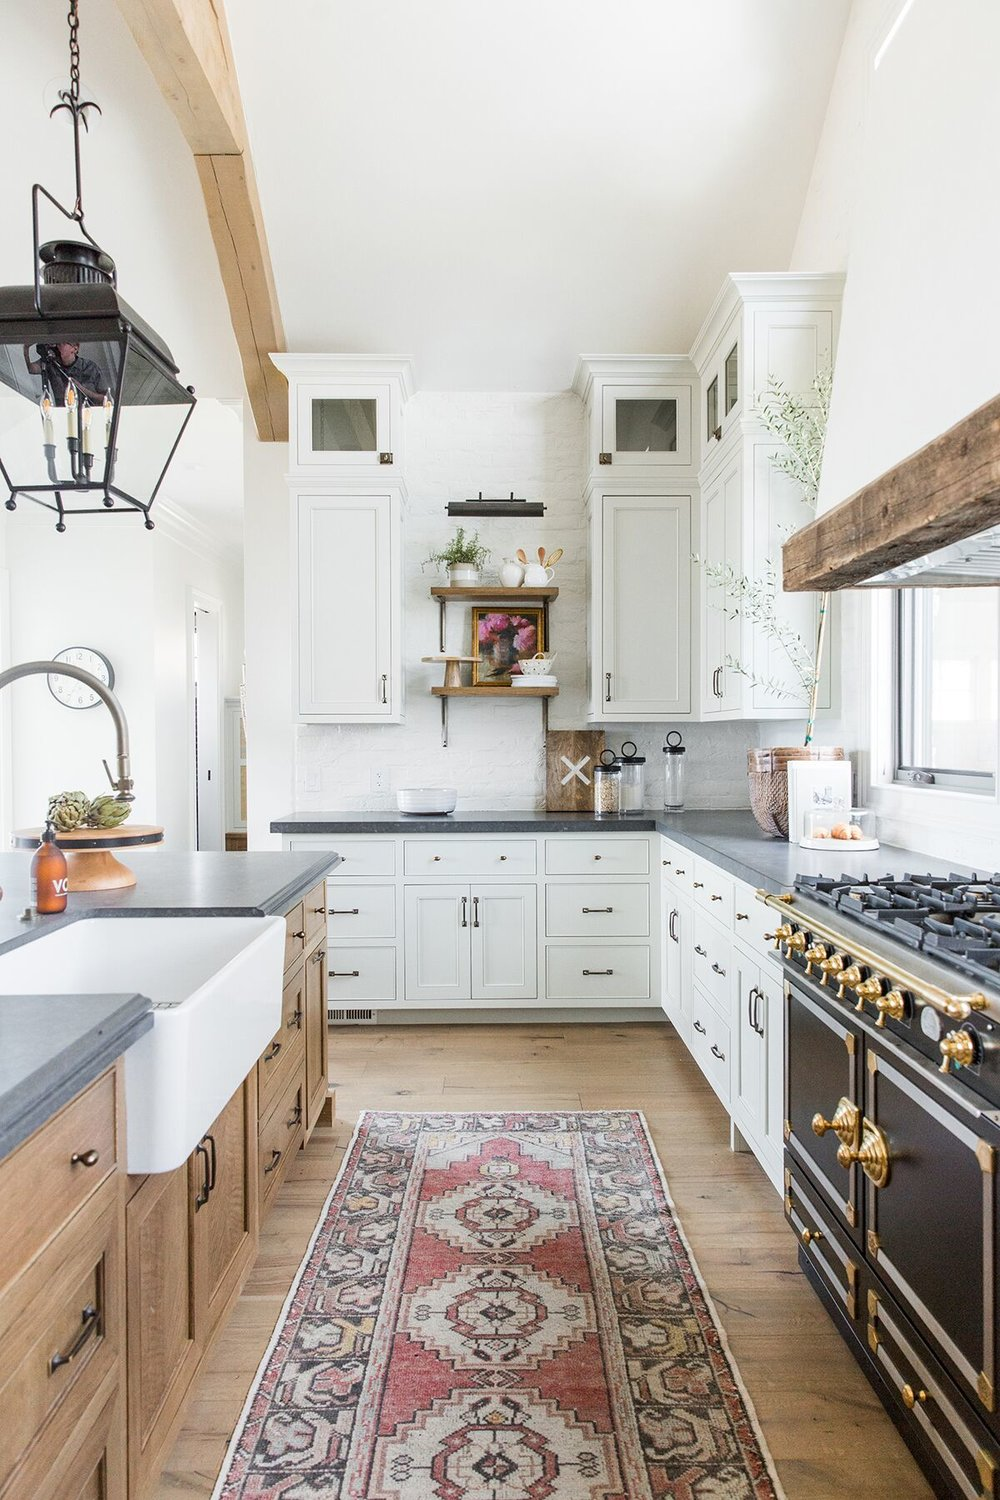 Refined,+rustic+kitchen+with+exposed+wooden+beams,+hanging+lanterns,+painted+white+brick,+oven+range+in+mountain+home+-+Studio+McGee+Design.jpg